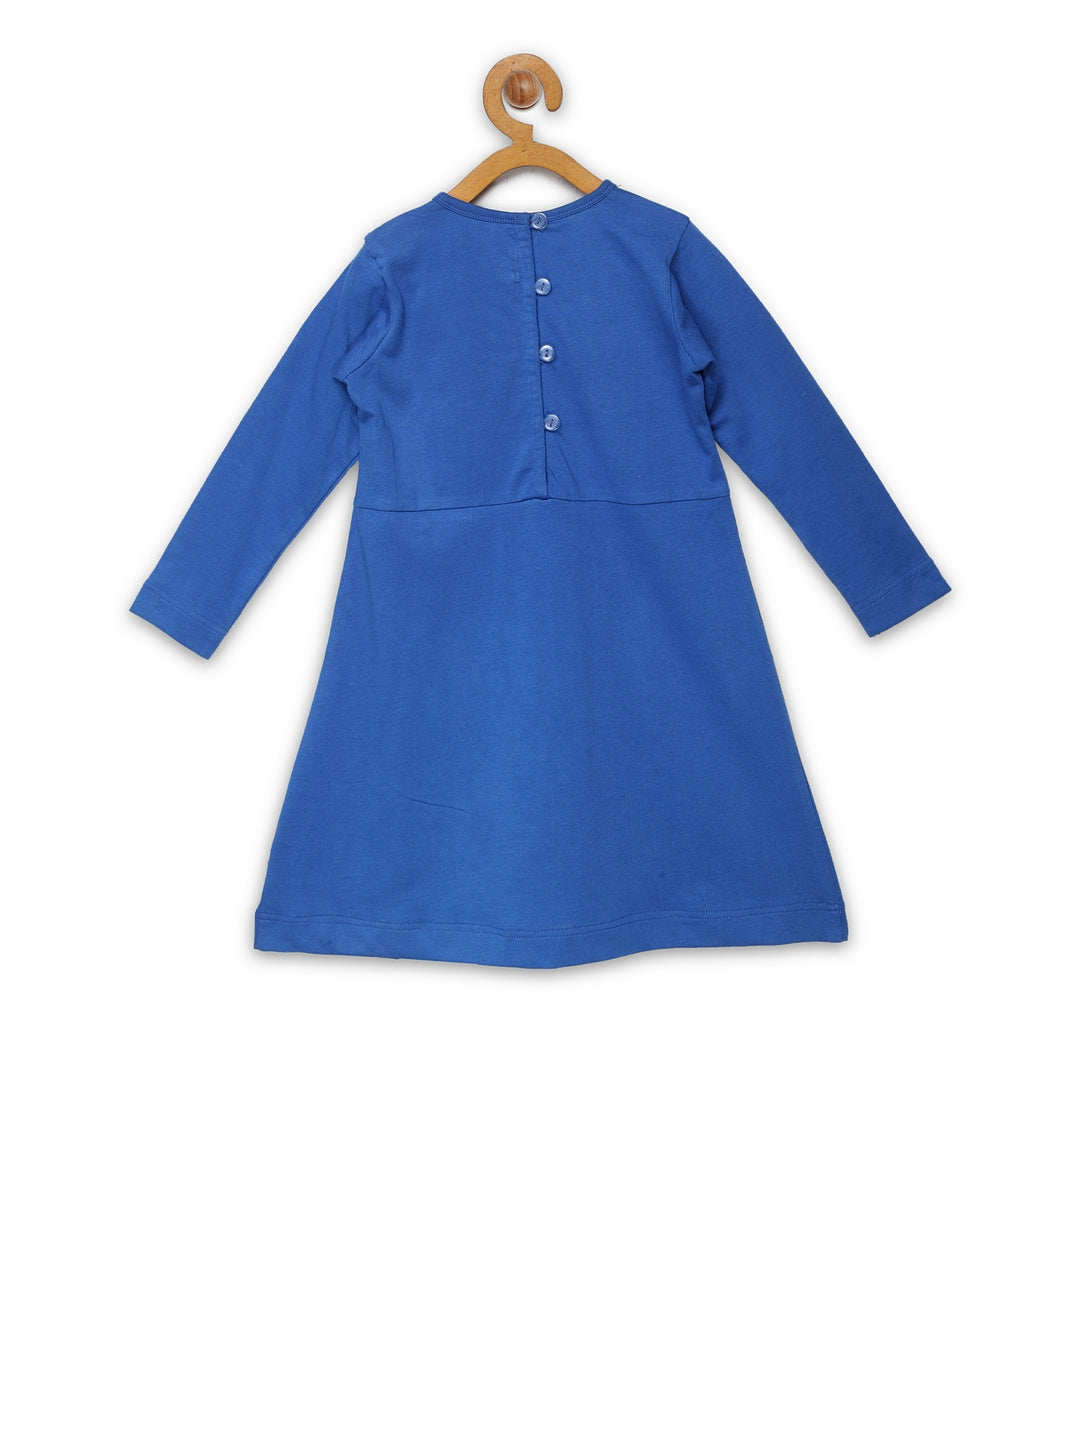 Blue Box Pleat Frock